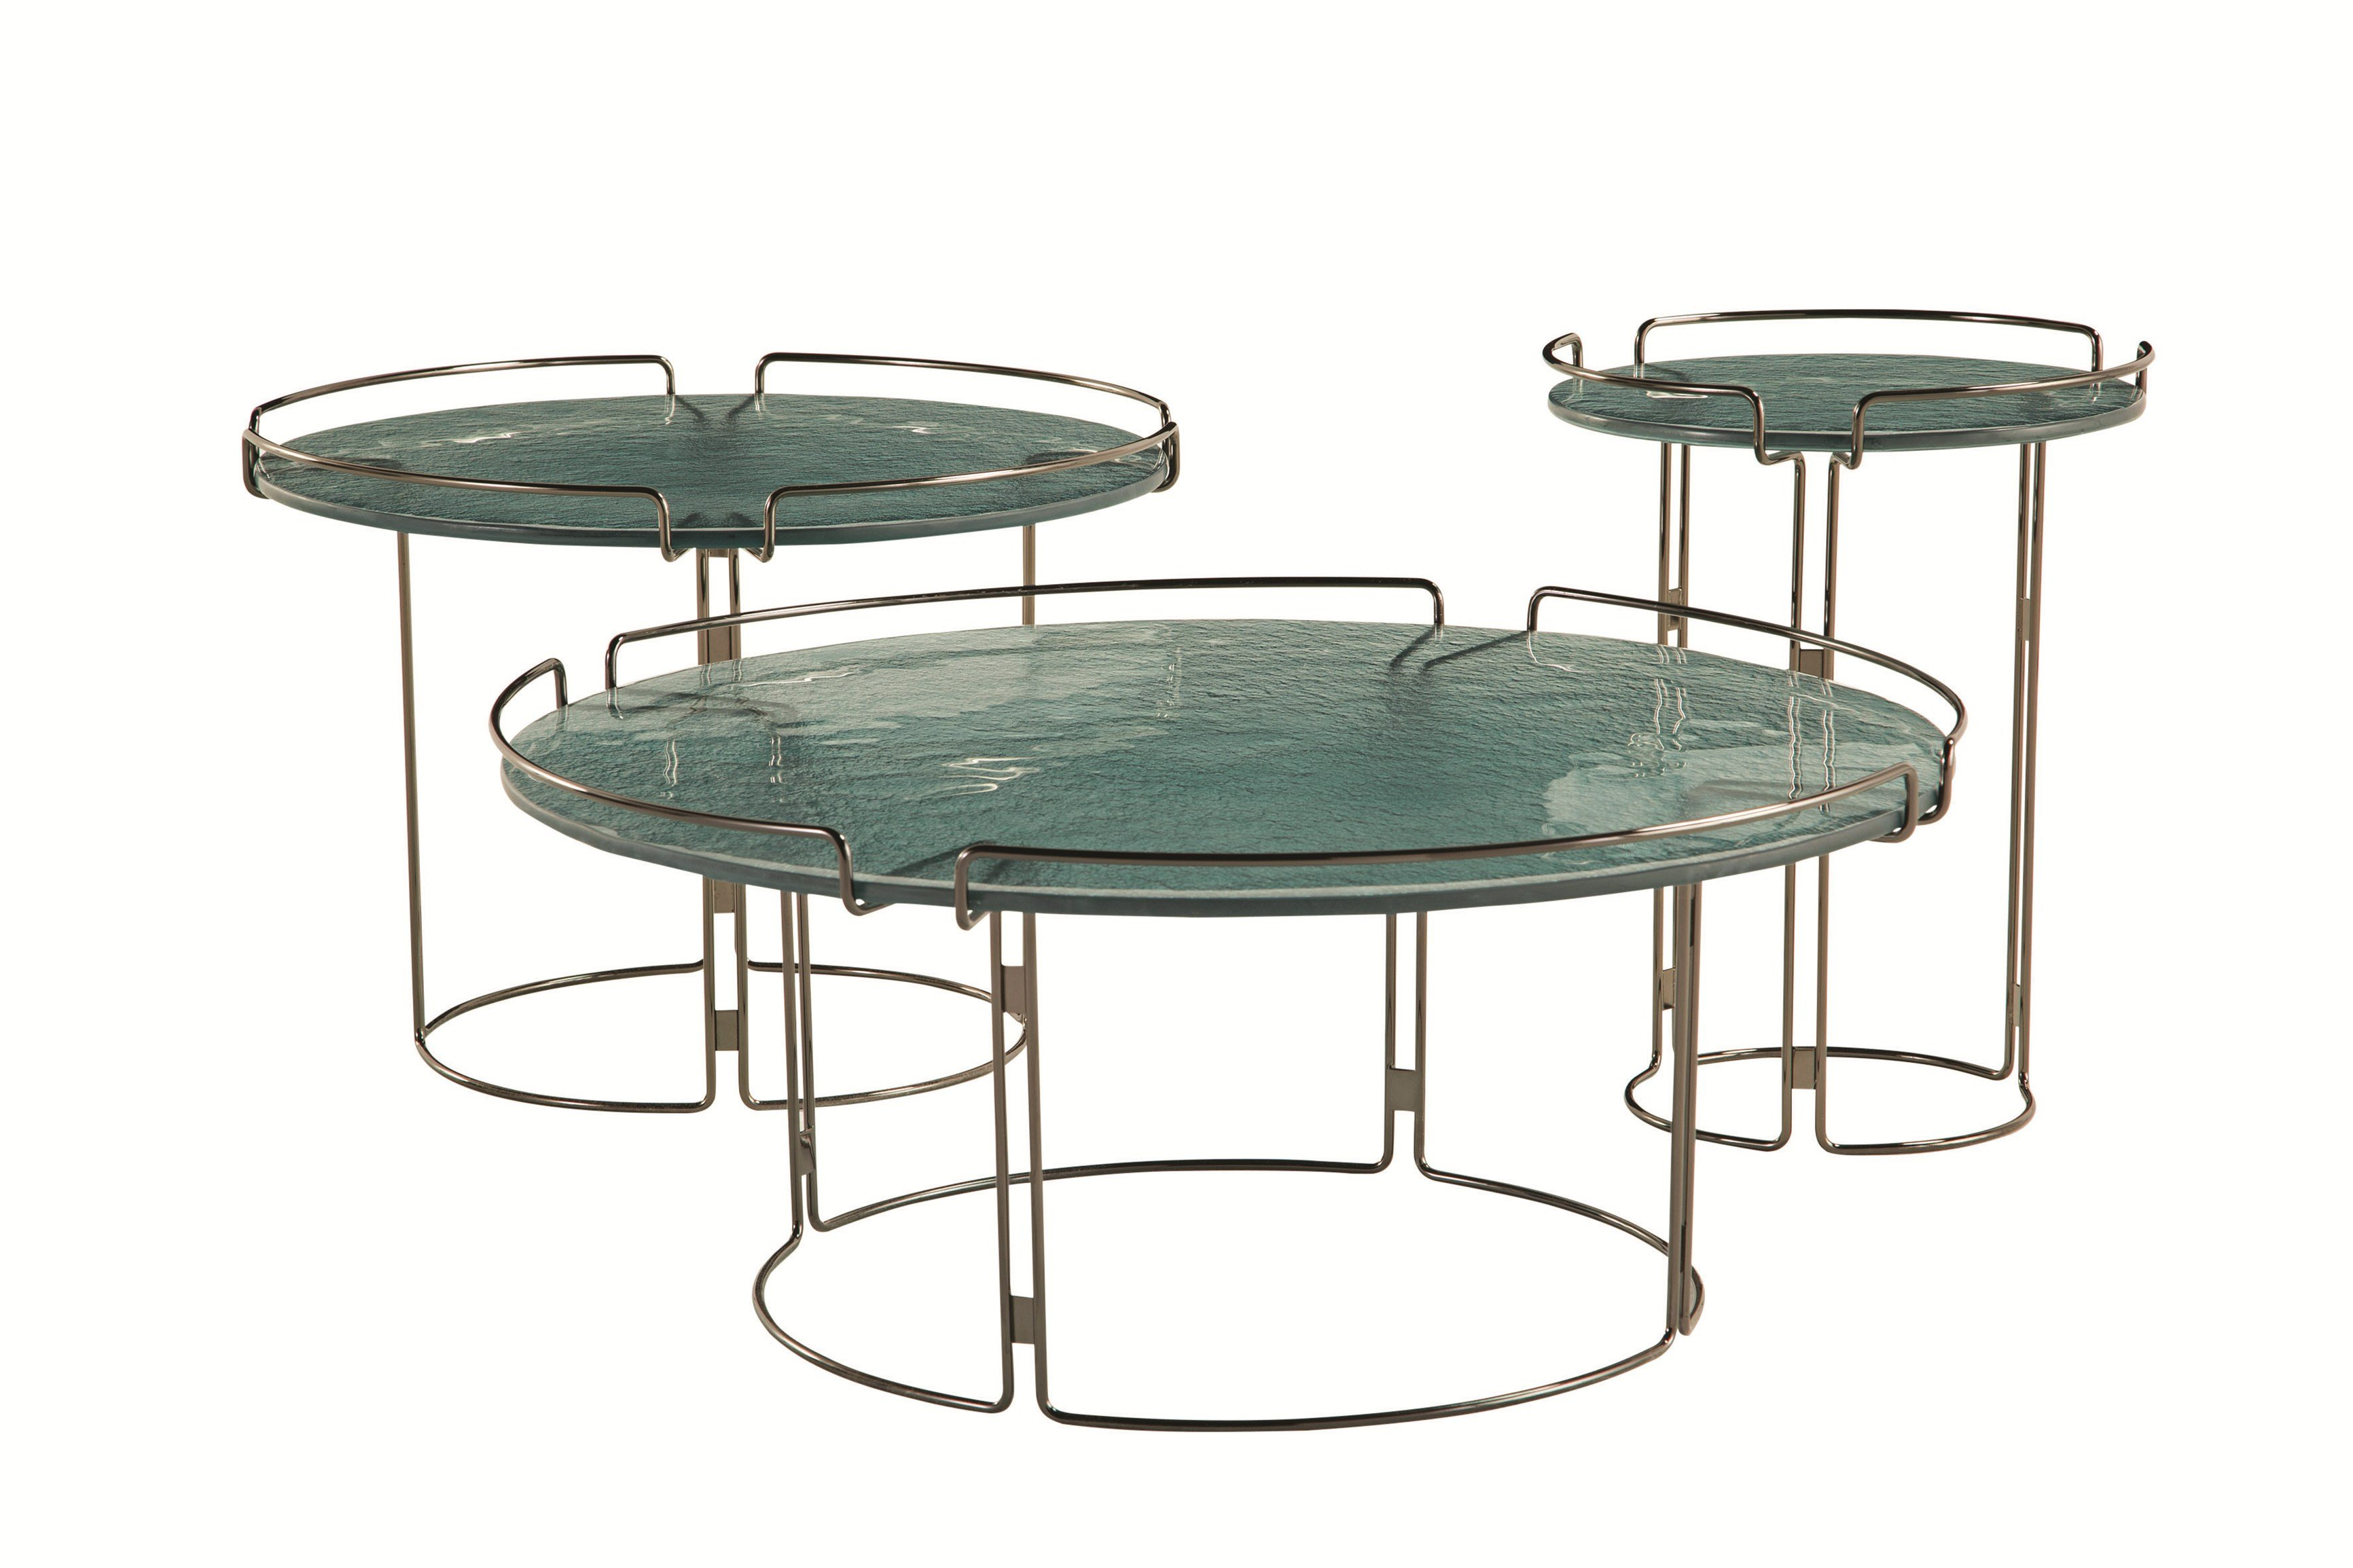 Table basse ronde en marbre bijou by roche bobois design - Table basse verre roche bobois ...